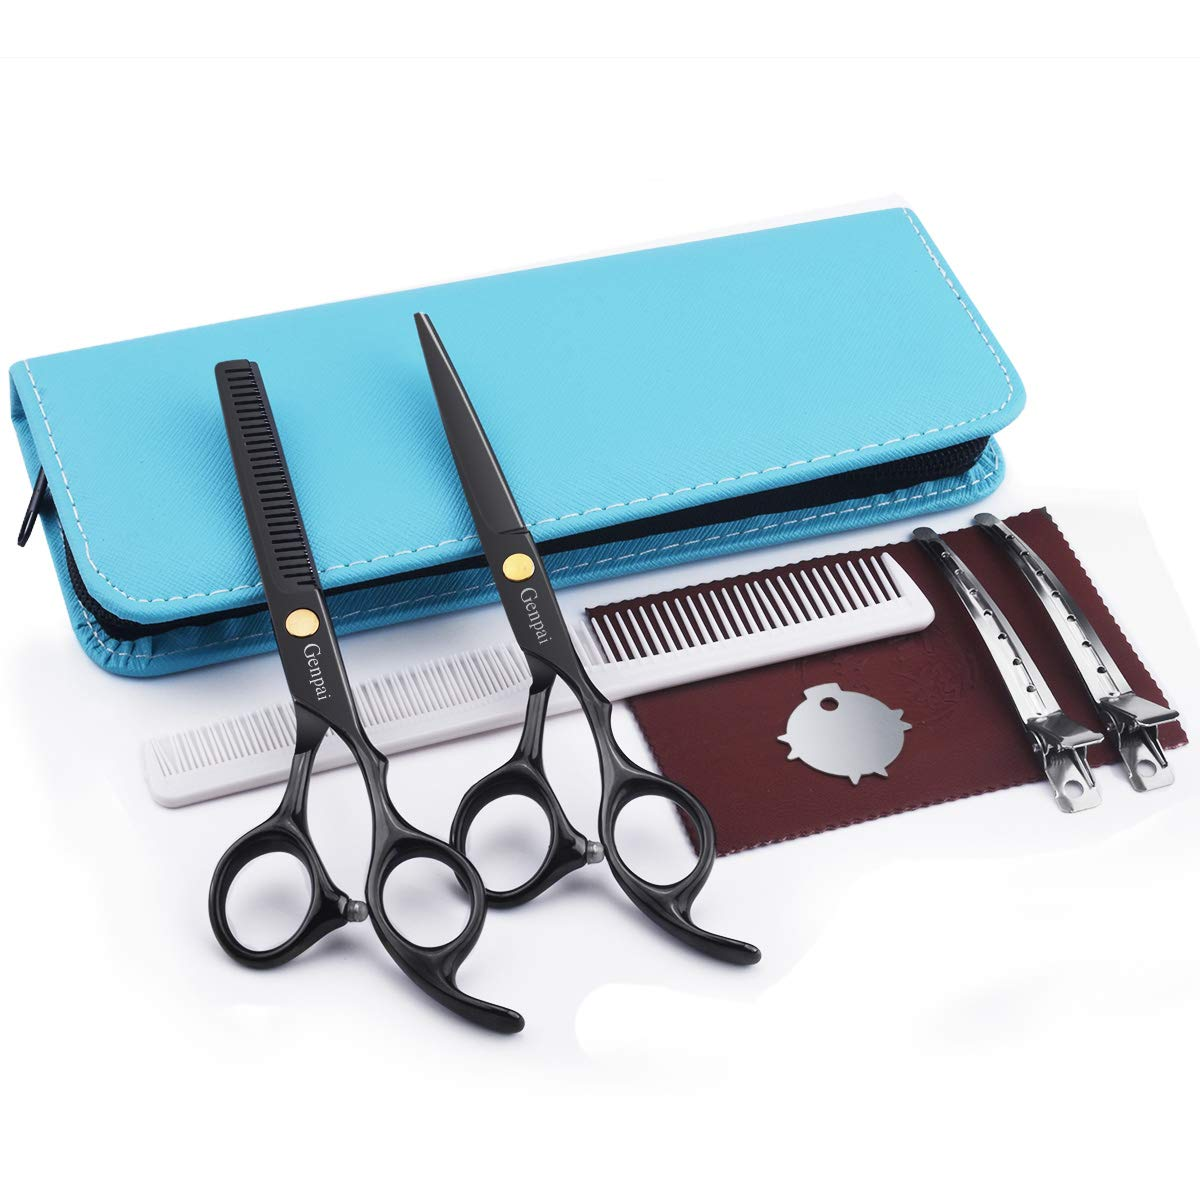 Genpai Hair Cutting Scissors Set, Professional Barber Hair Salon Household Children\'s Stainless Steel Shear Bangs Artifact Thinning Hairdressing Shear with Blue Leather Case(Blue)